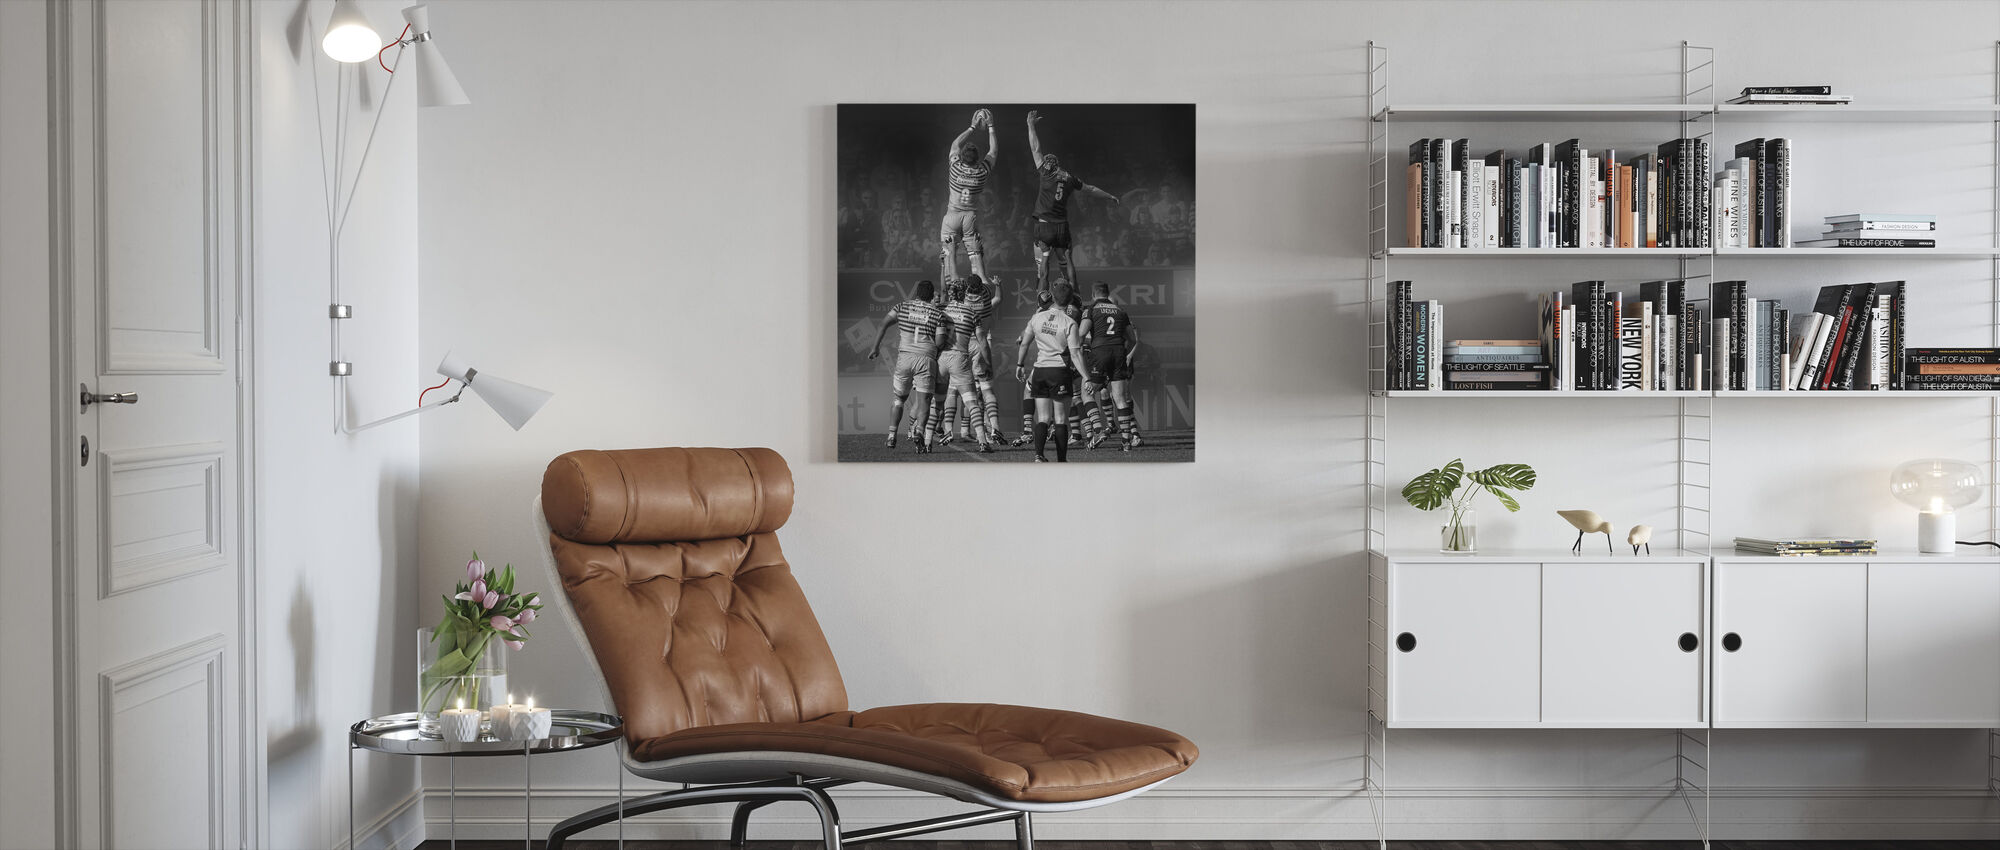 8 vs 5 - Canvas print - Living Room